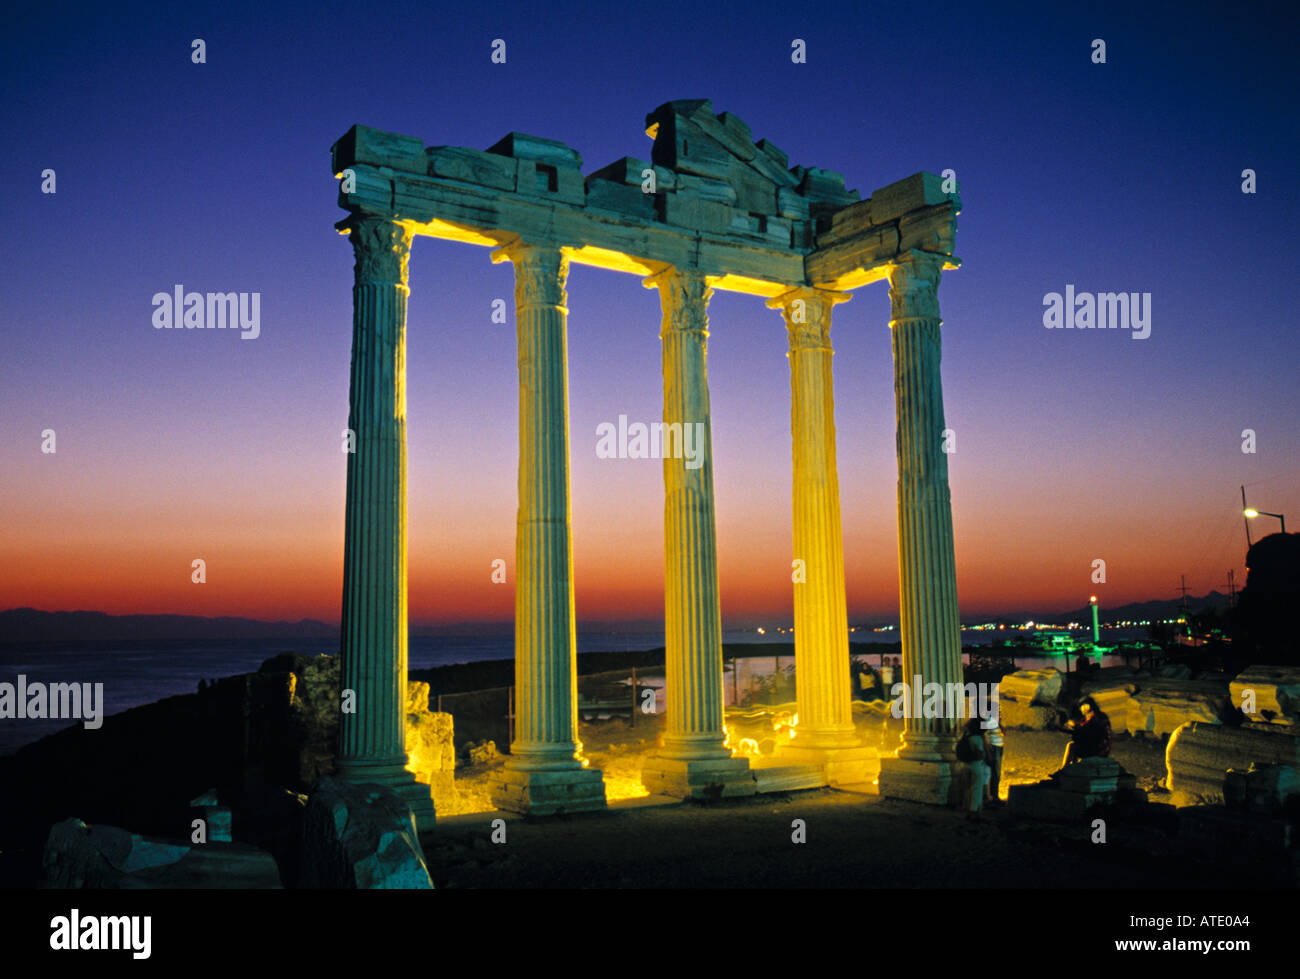 Temple d'Apollon, Side, Turquie Photo Stock